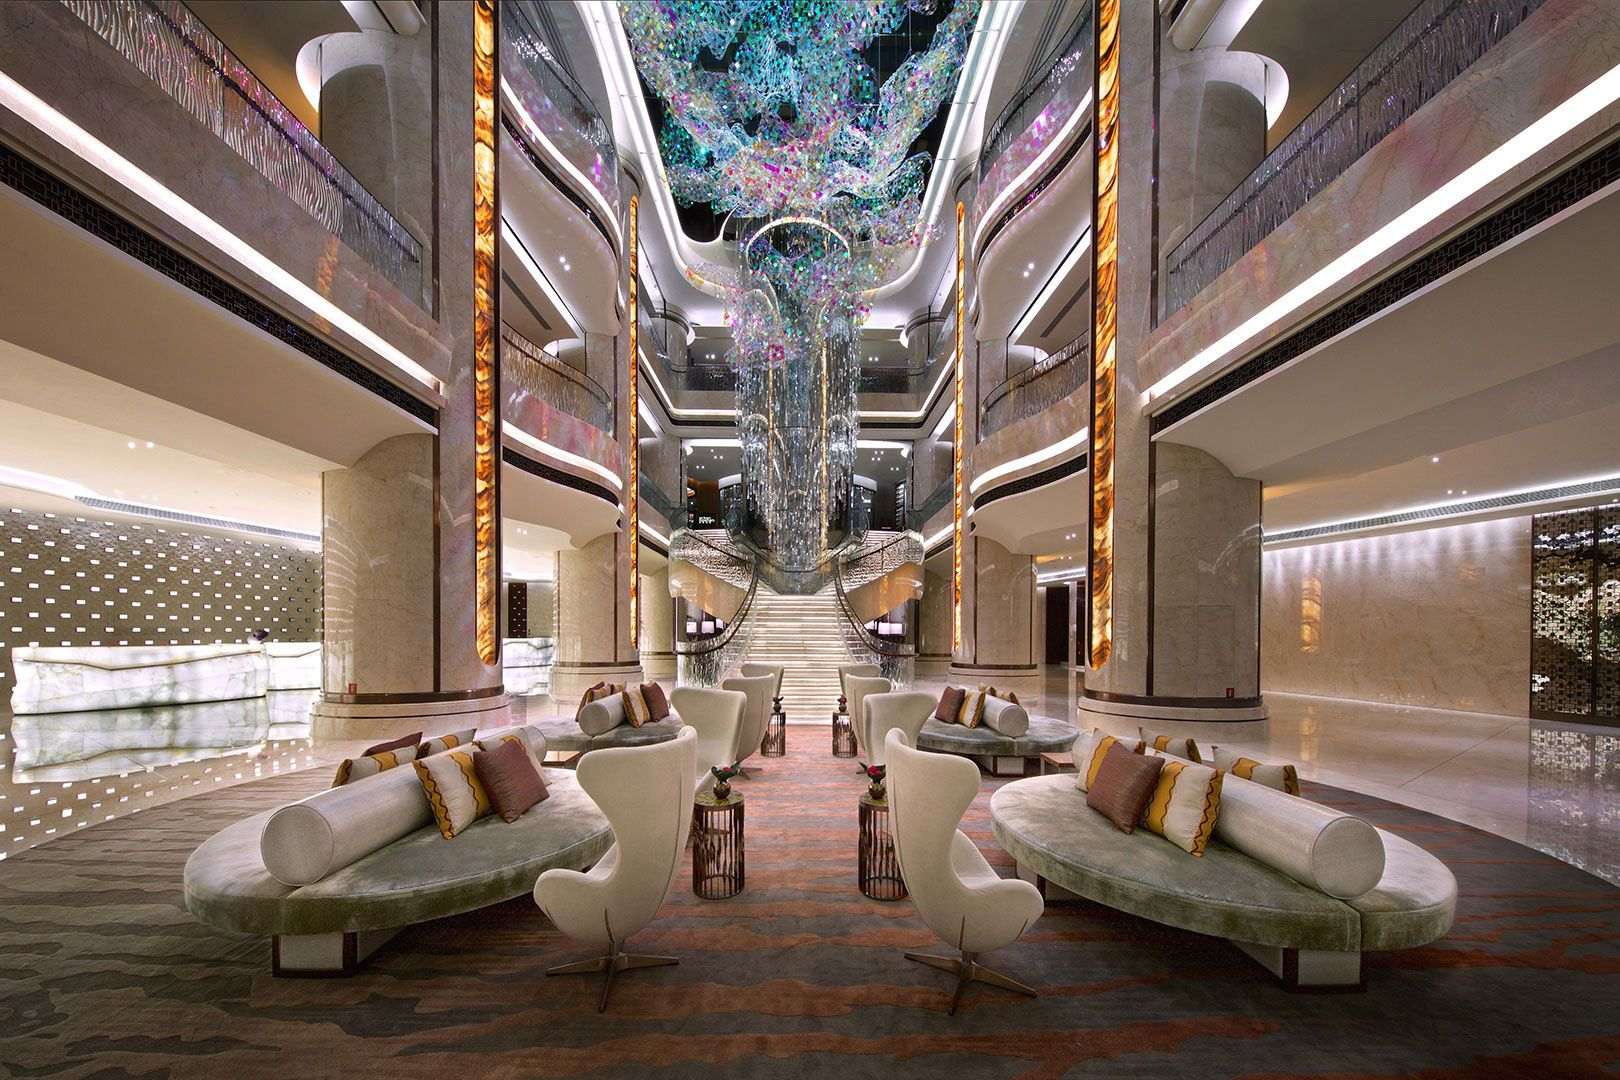 Hba jw marriott galaxy macau public space pinterest for Hotel interior design companies